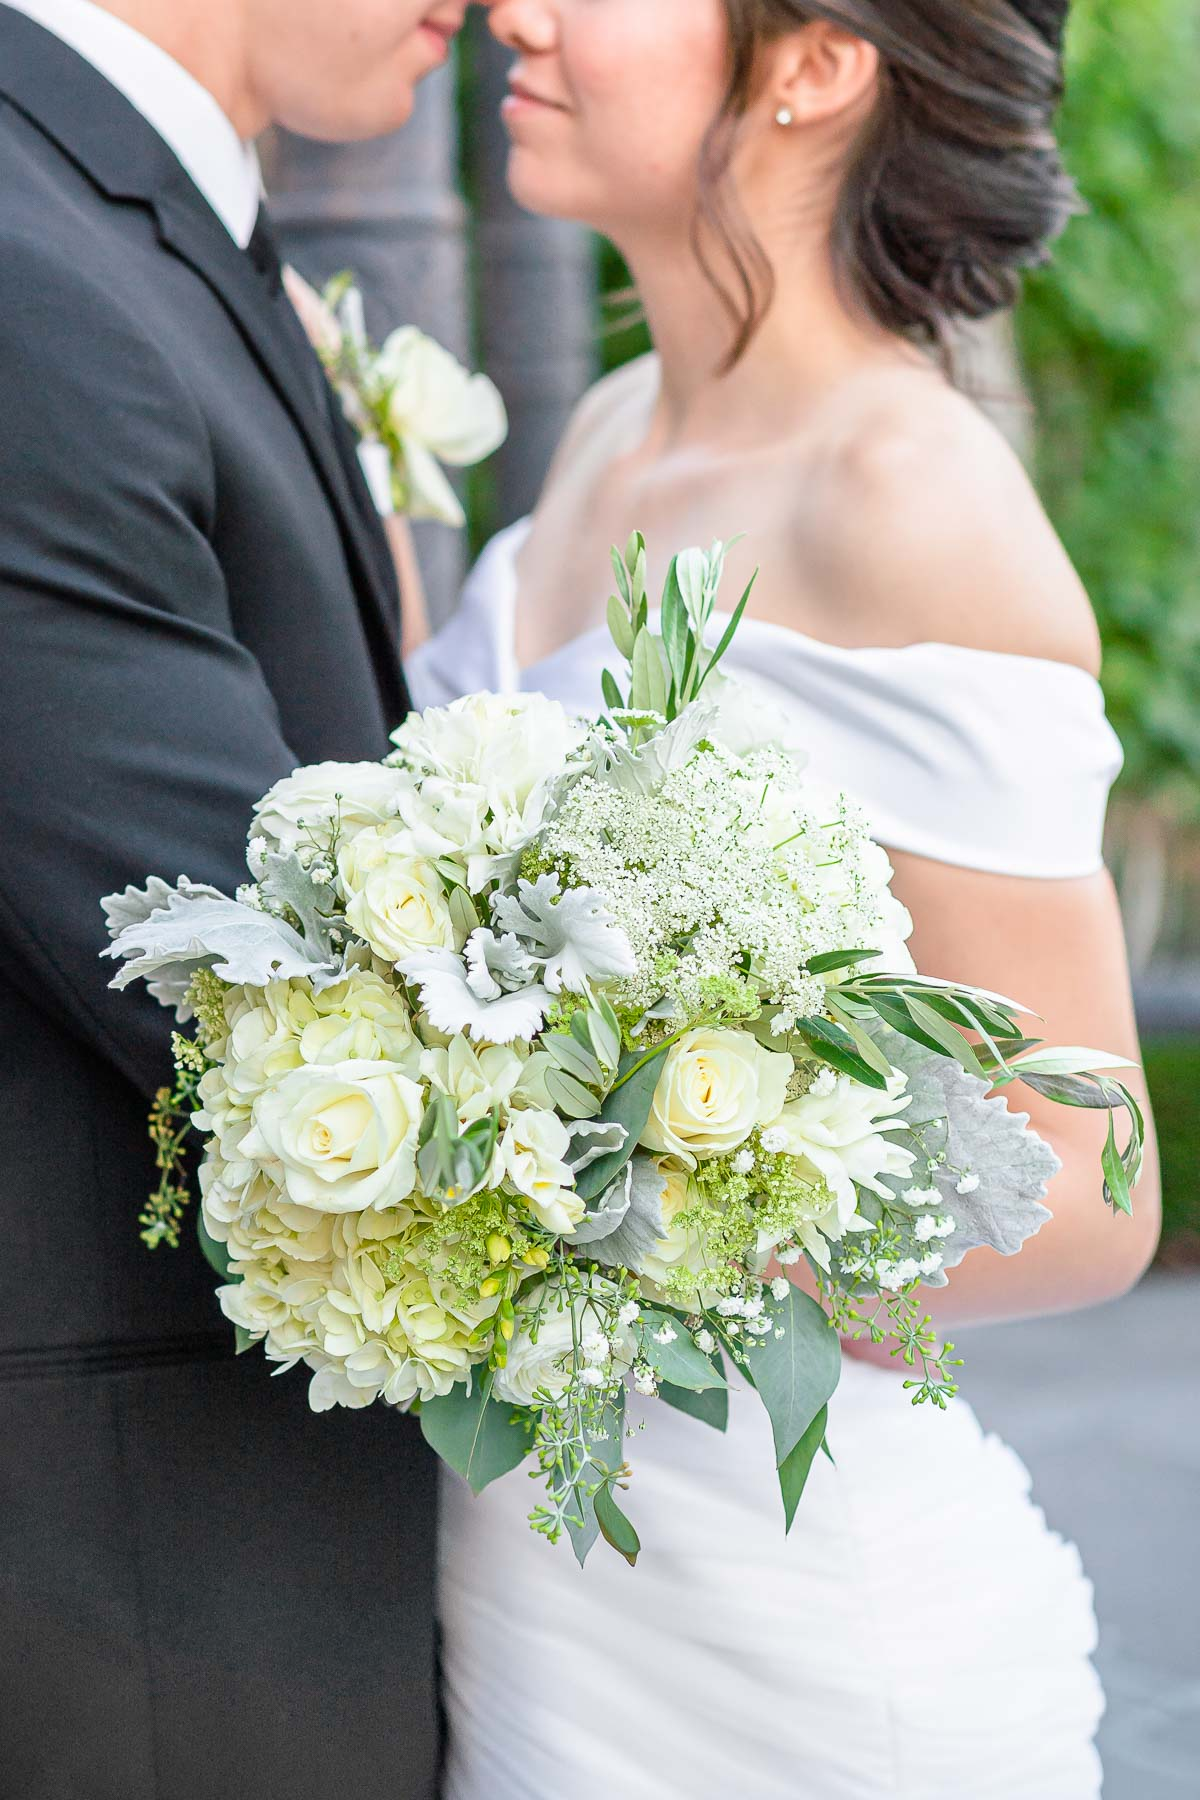 close up of bouquet with white roses and green leaves